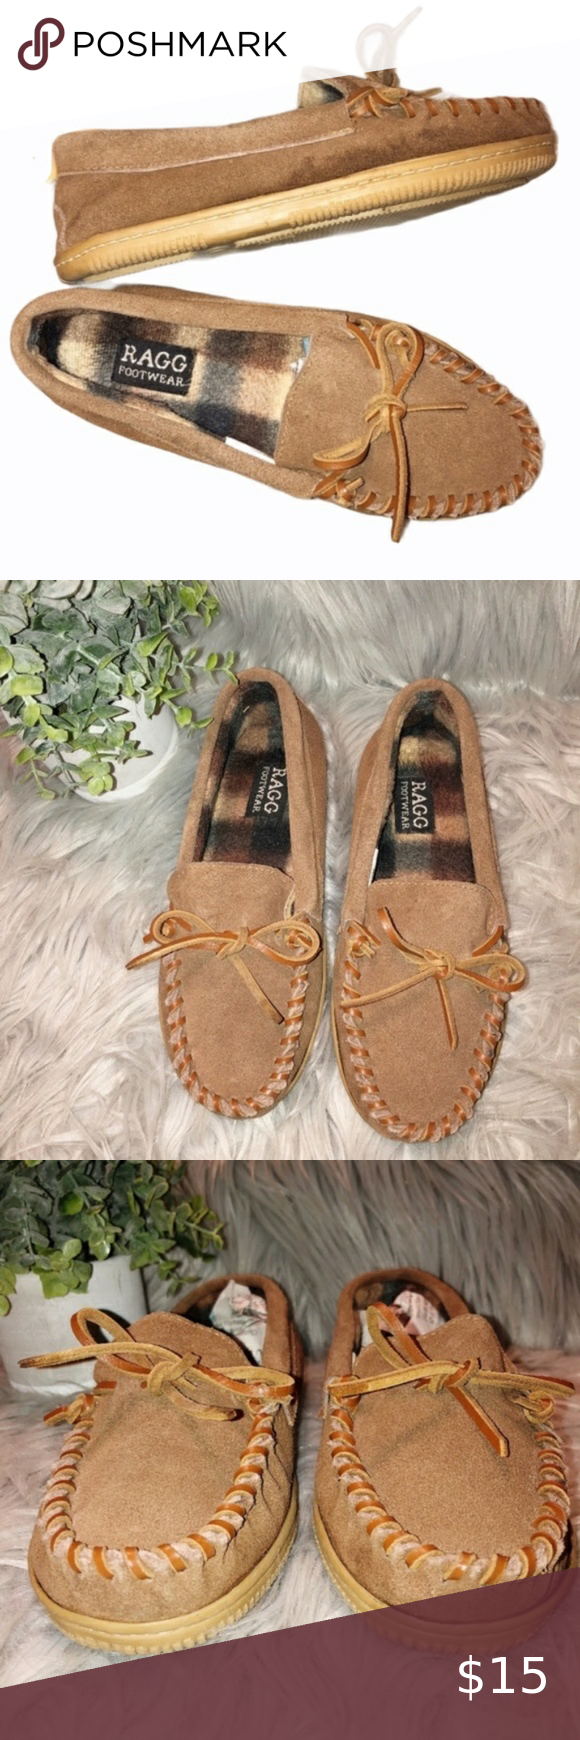 Ragg Footwear Brown Leather Moccasin Slides 2 In 2020 Leather Moccasins Leather Moccasins